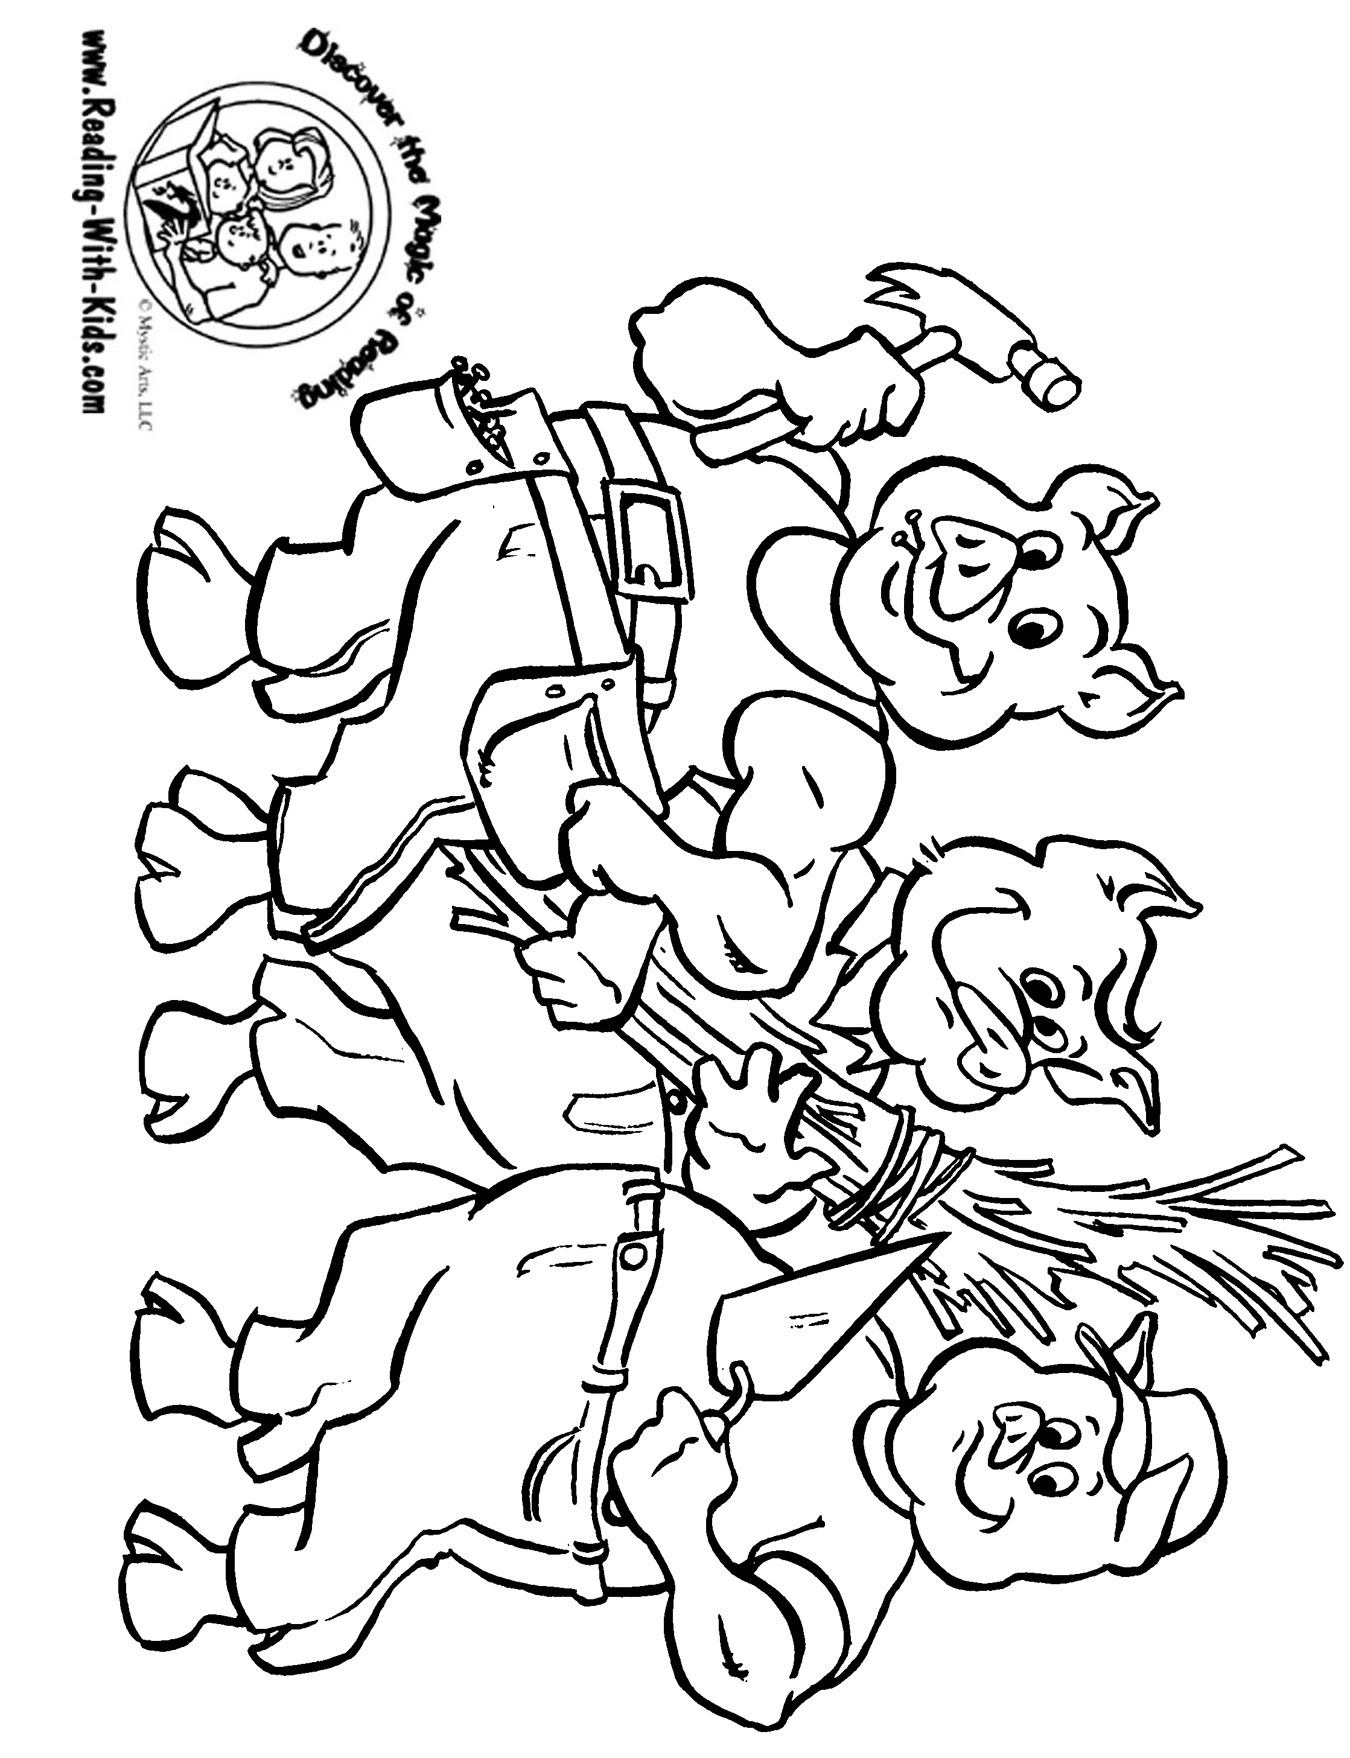 Coloring Pages Fairy Tail at GetColorings.com | Free ...